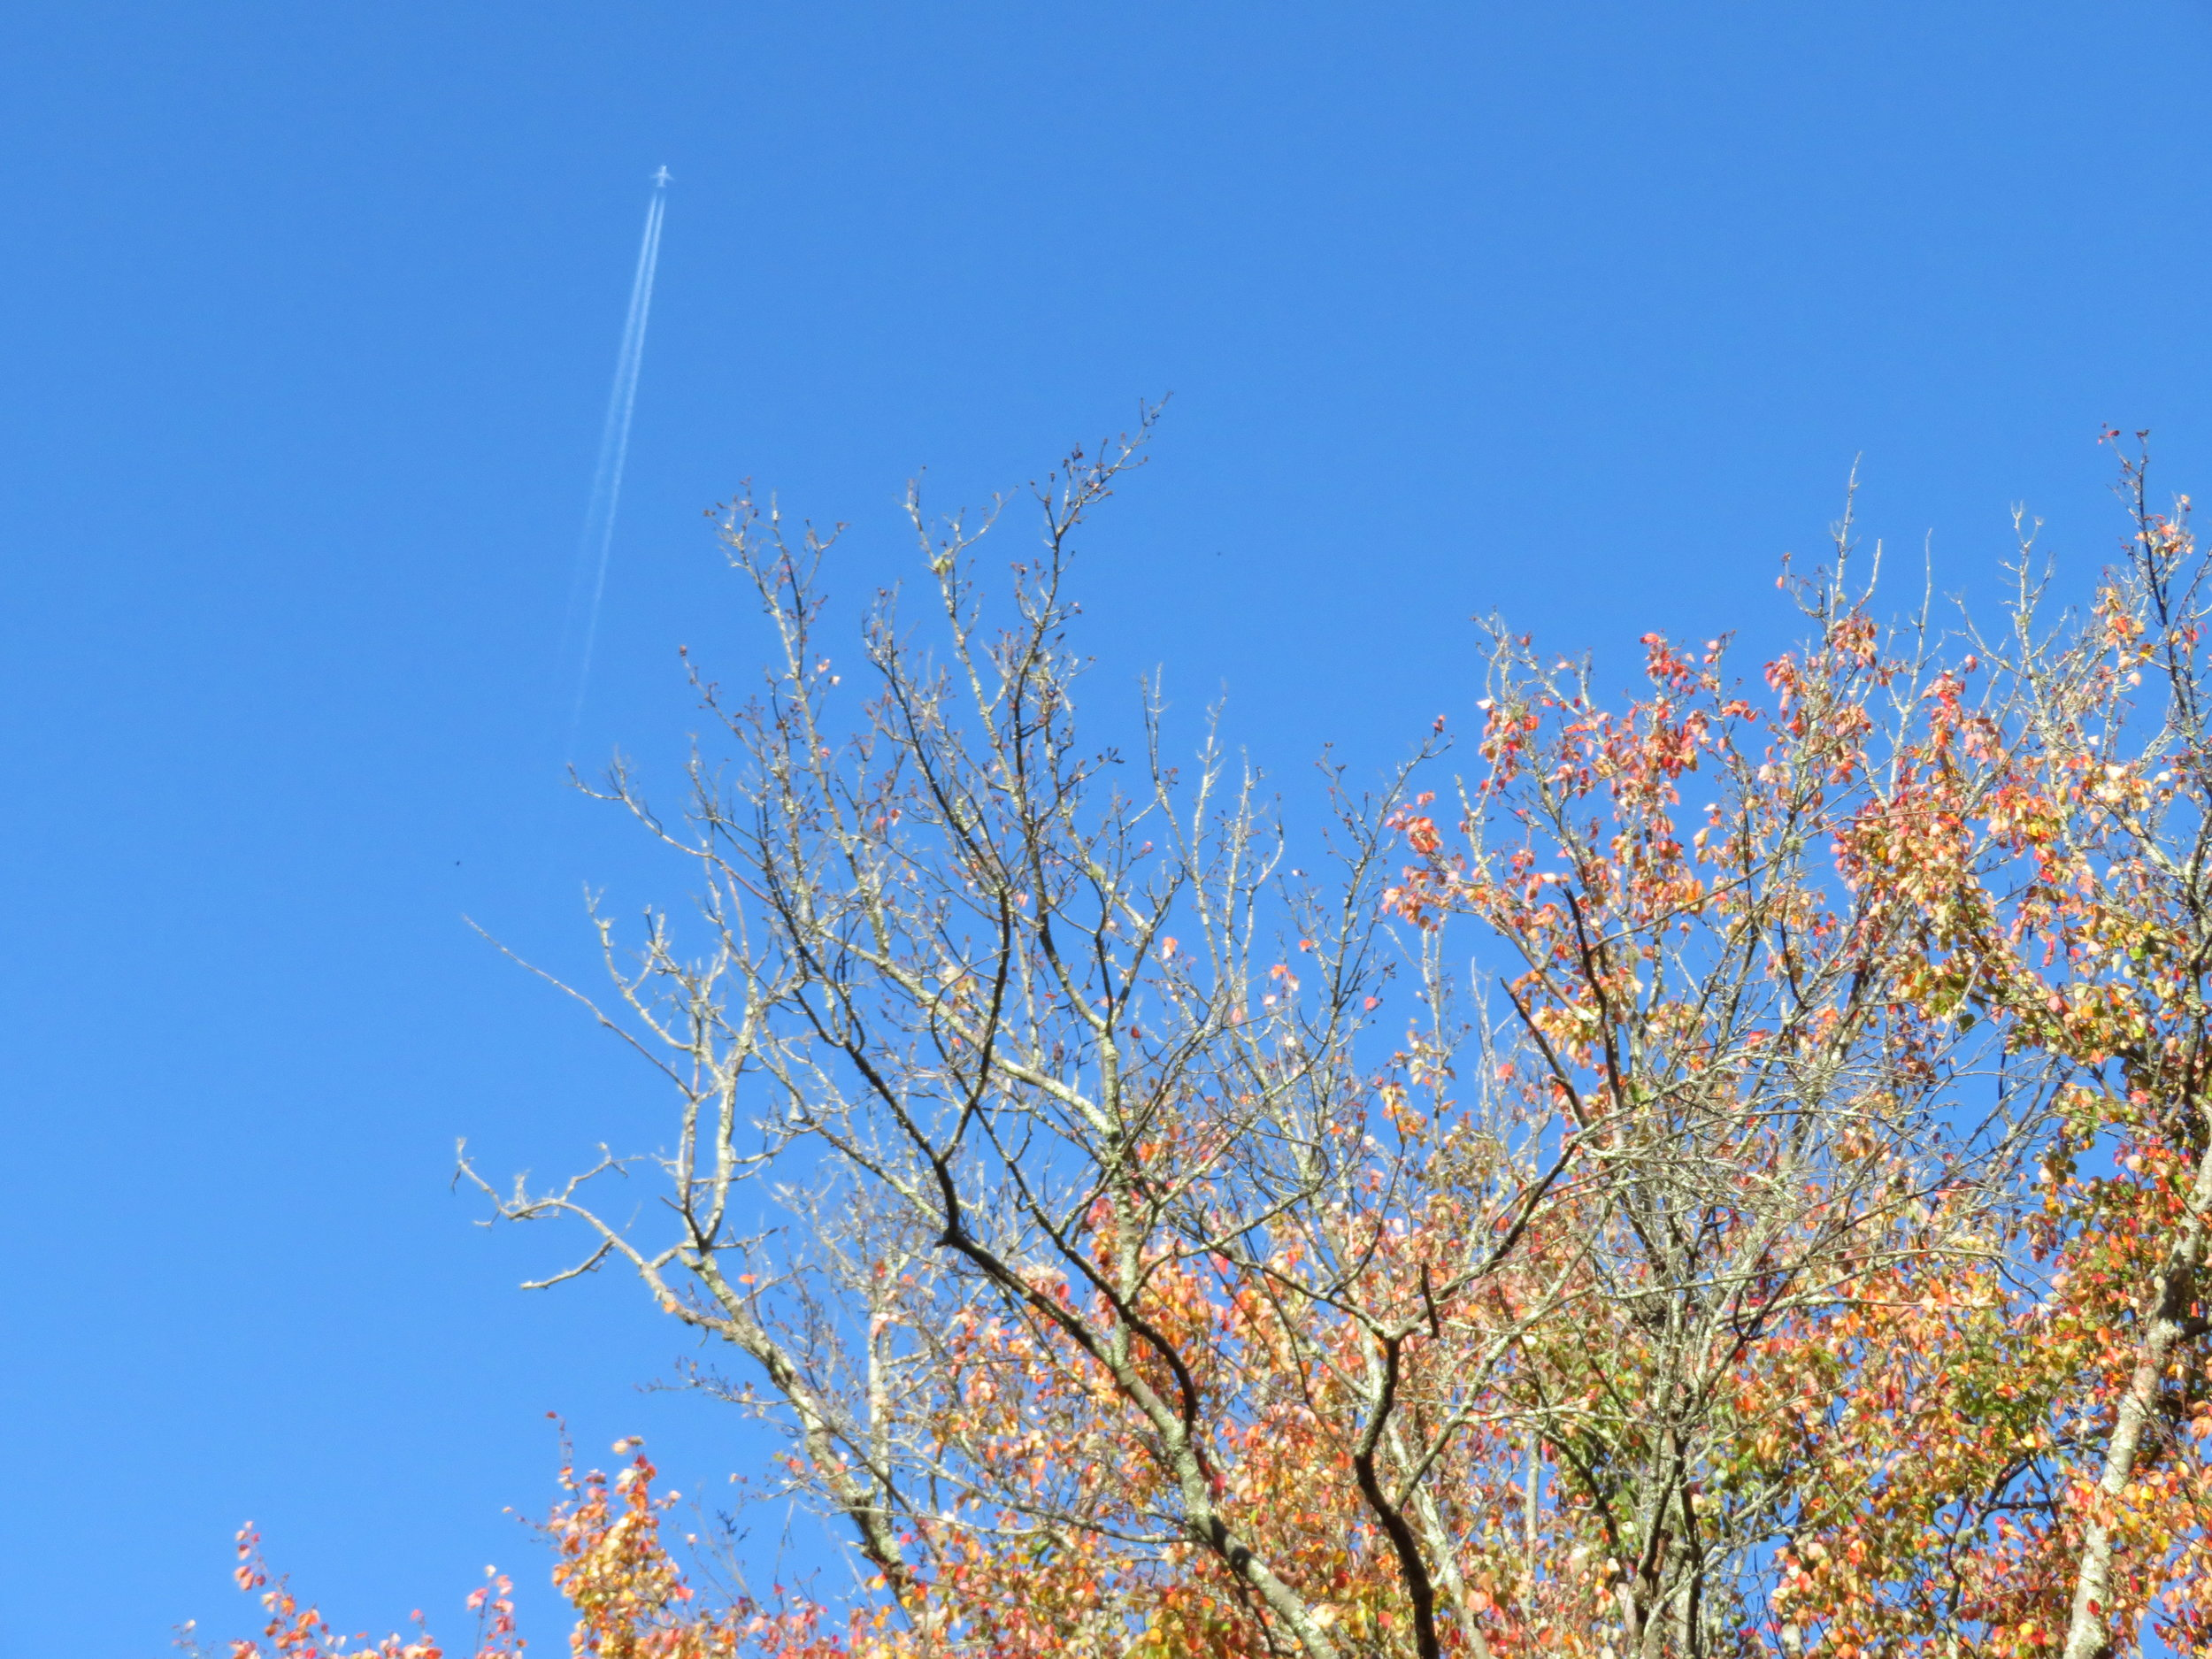 The sky is blue and clear except for the contrails.